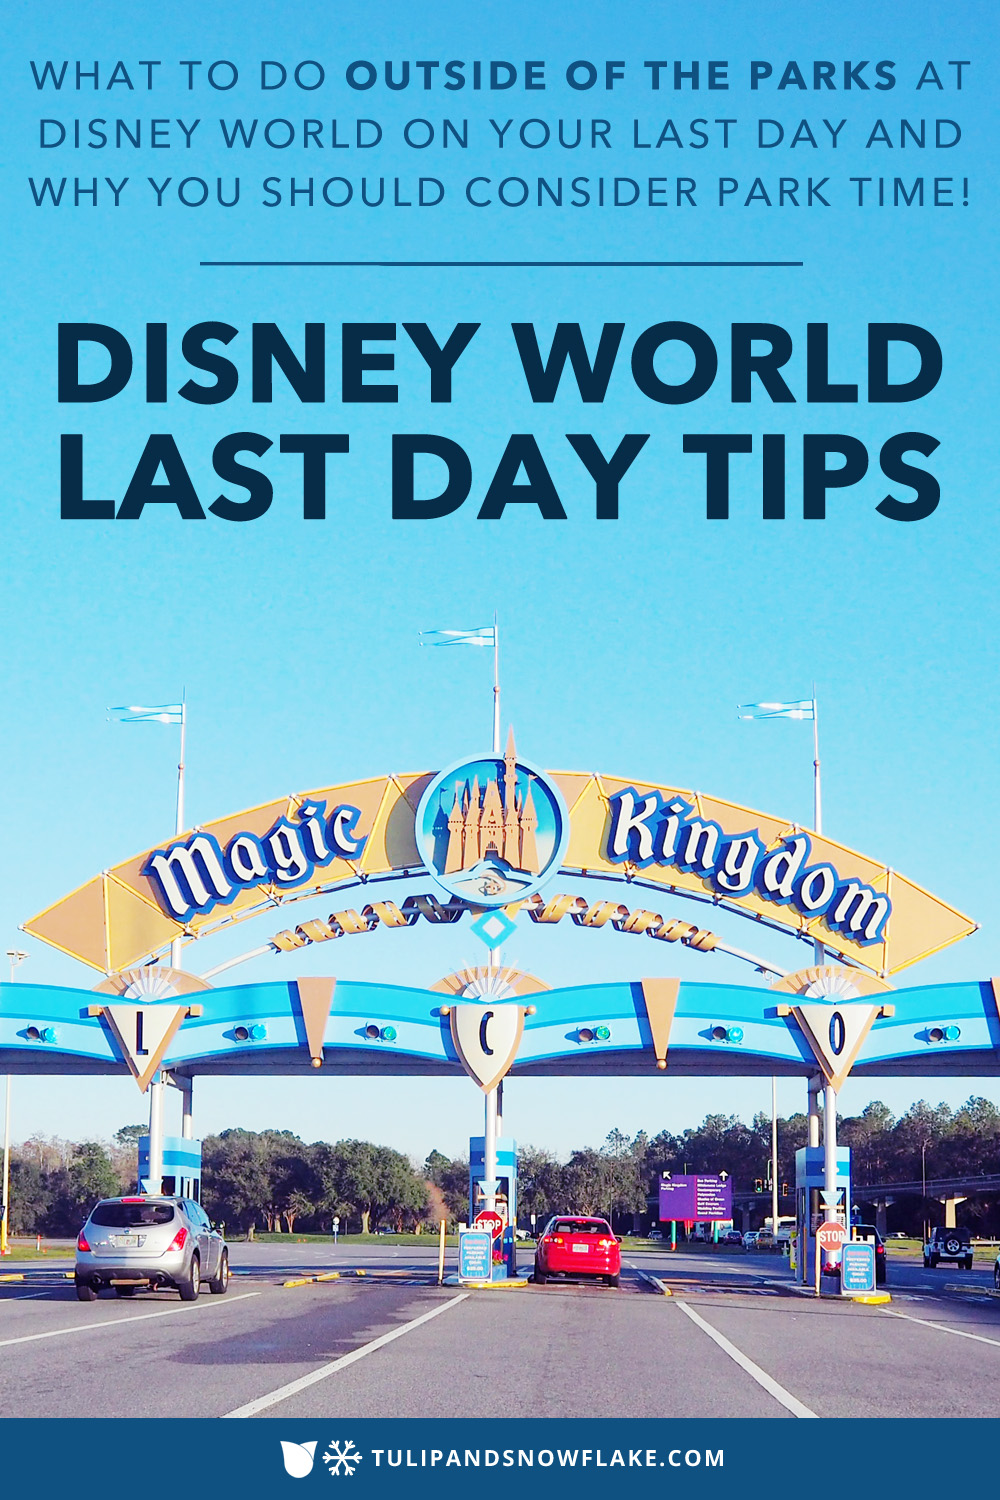 Disney World Last Day Tips